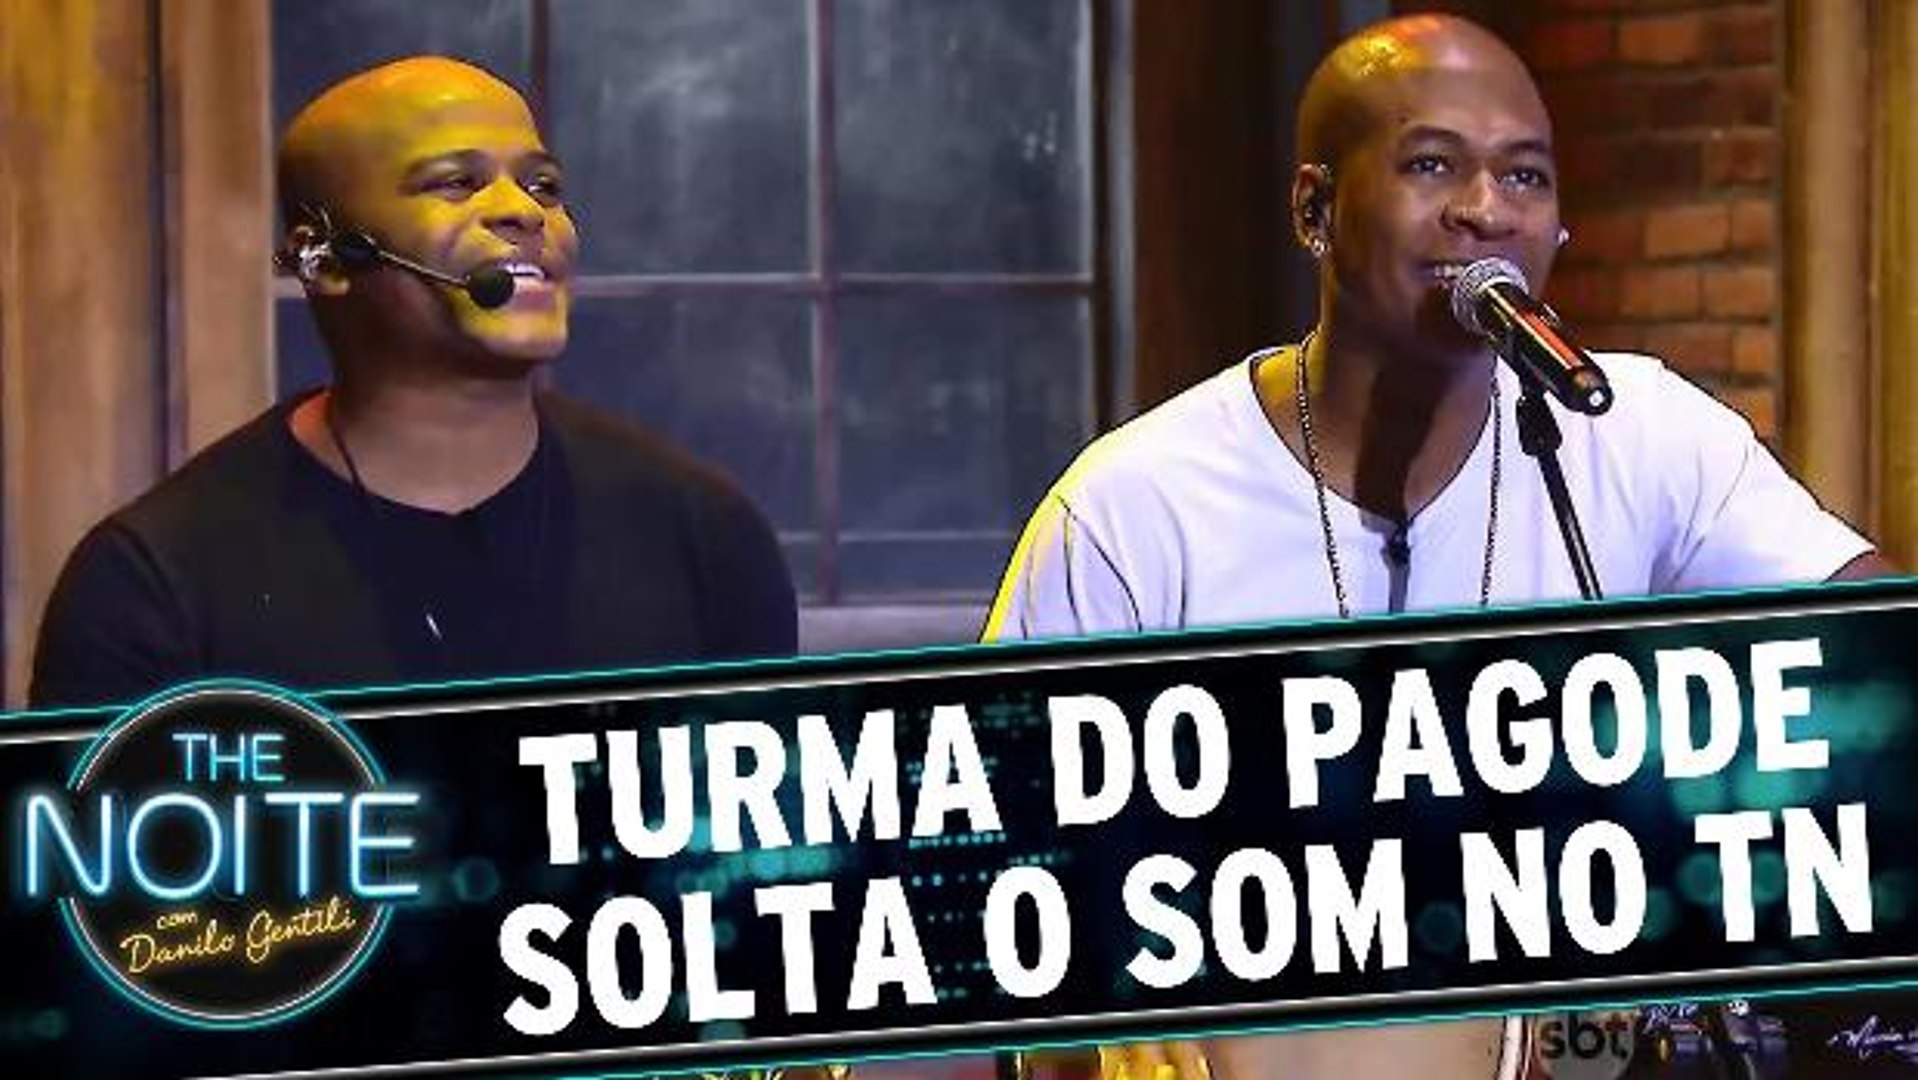 Turma do Pagode solta o som no The Noite